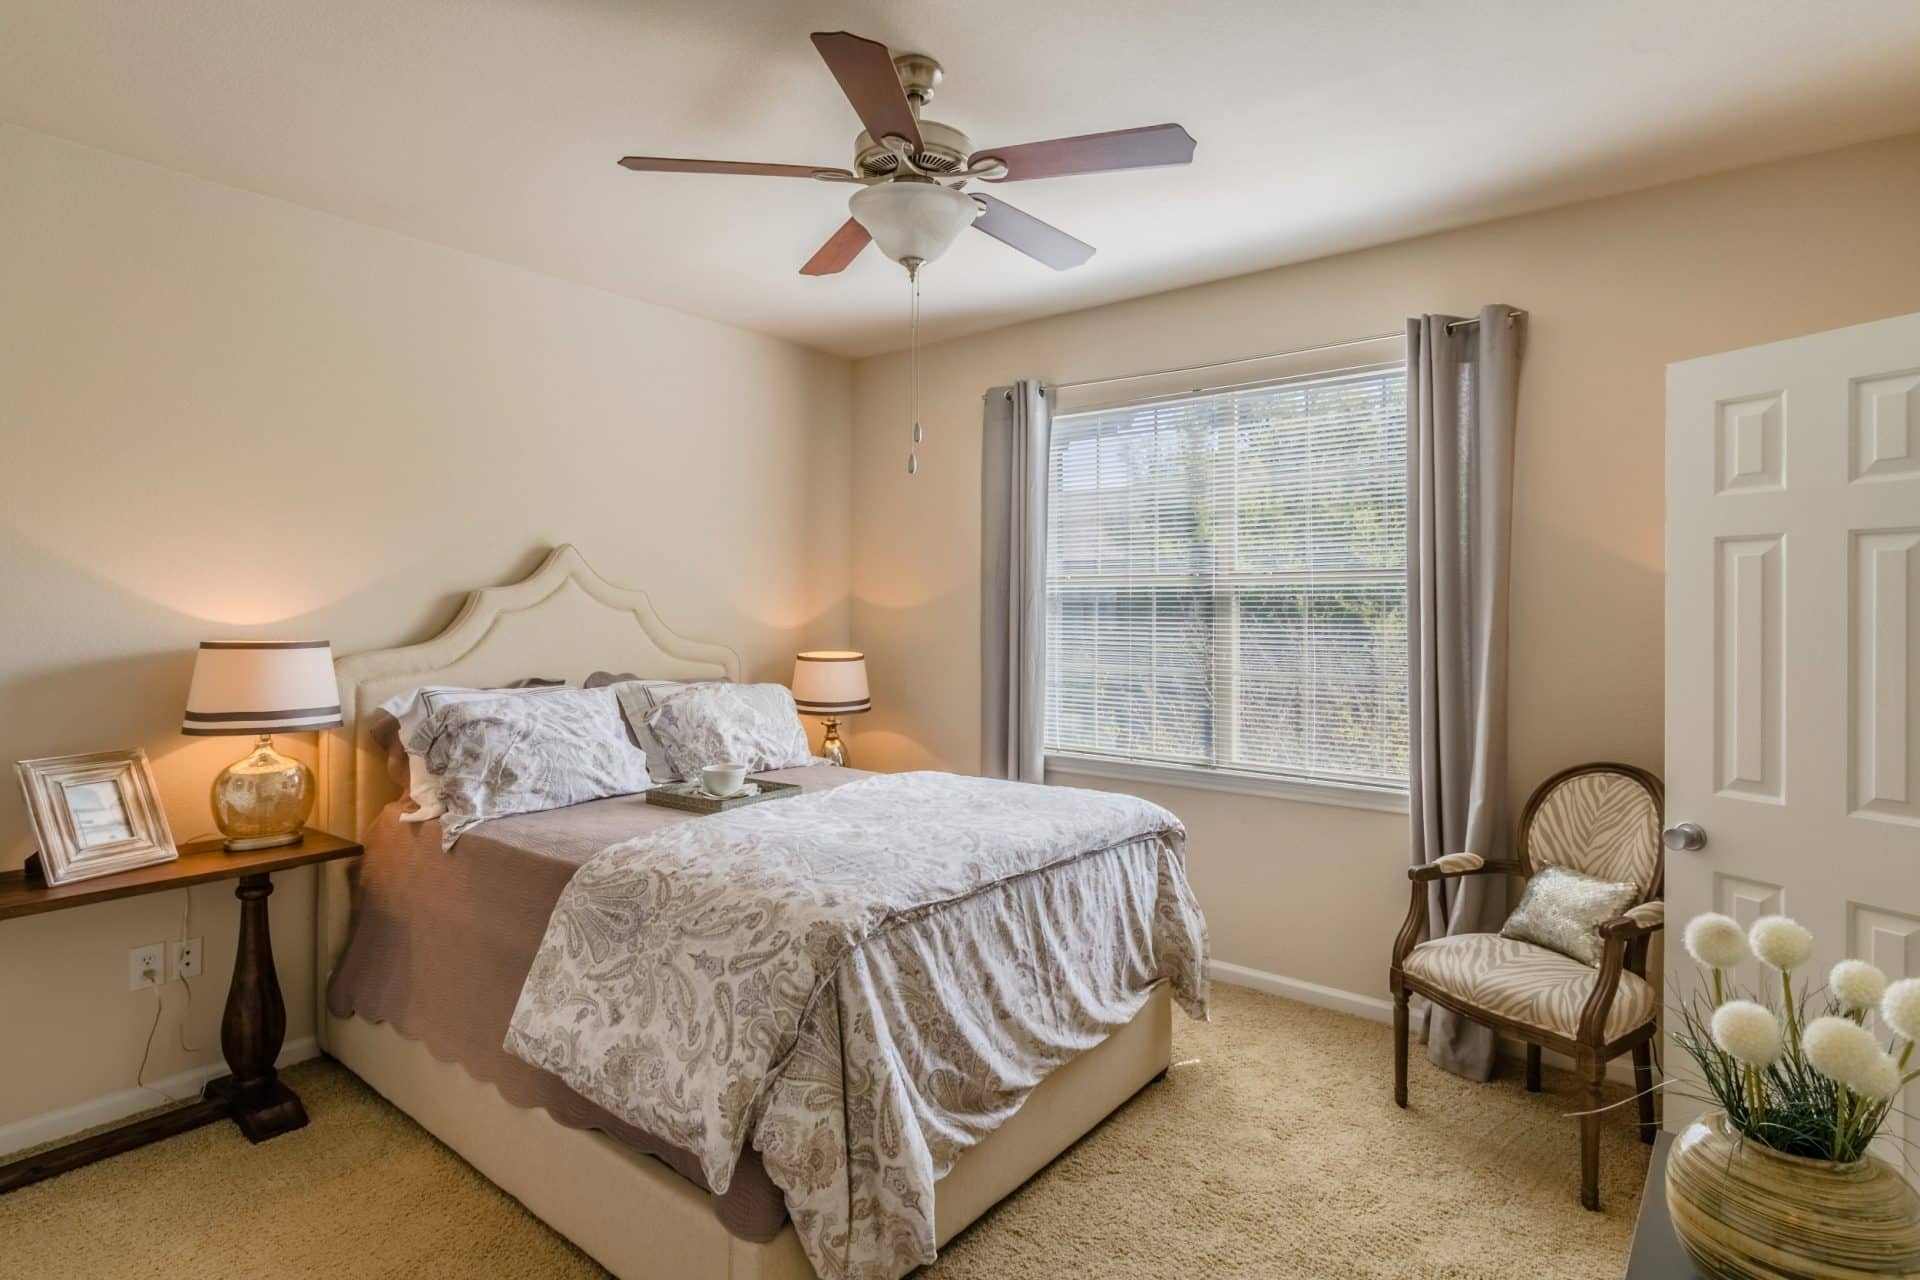 Ceiling Fans w/Lights in All Rooms